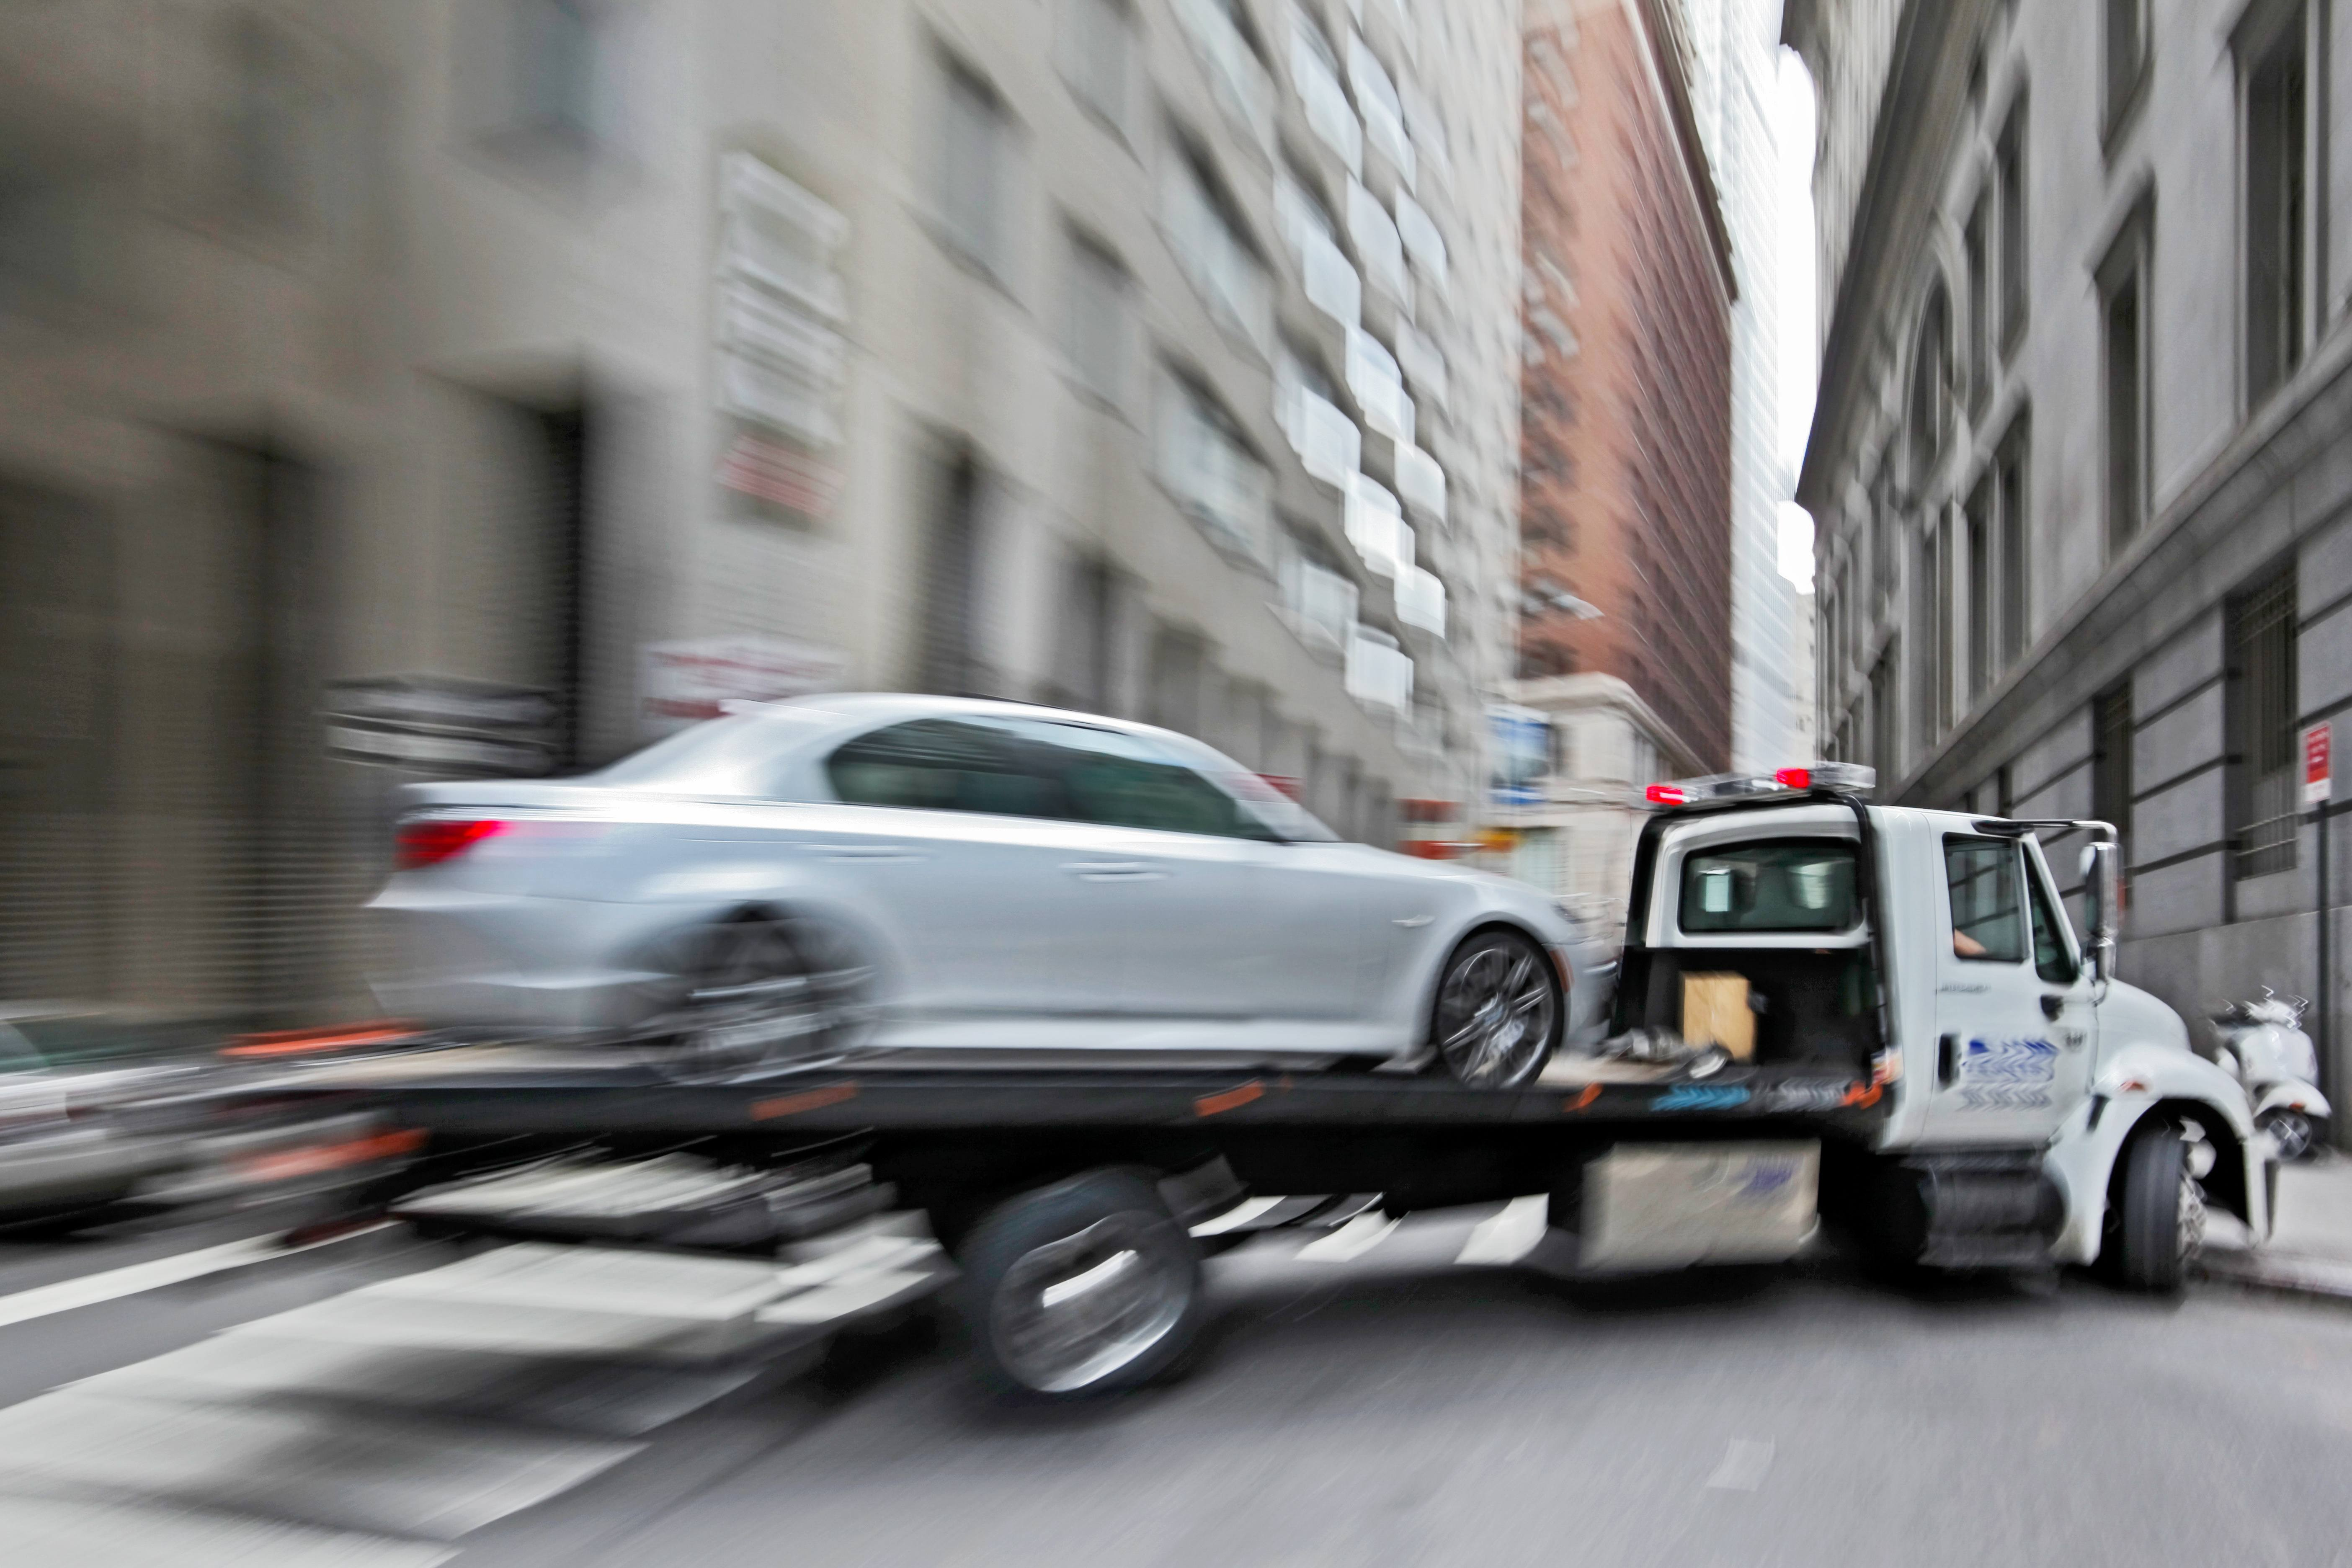 Tow truck and damaged vehicle | Wiers